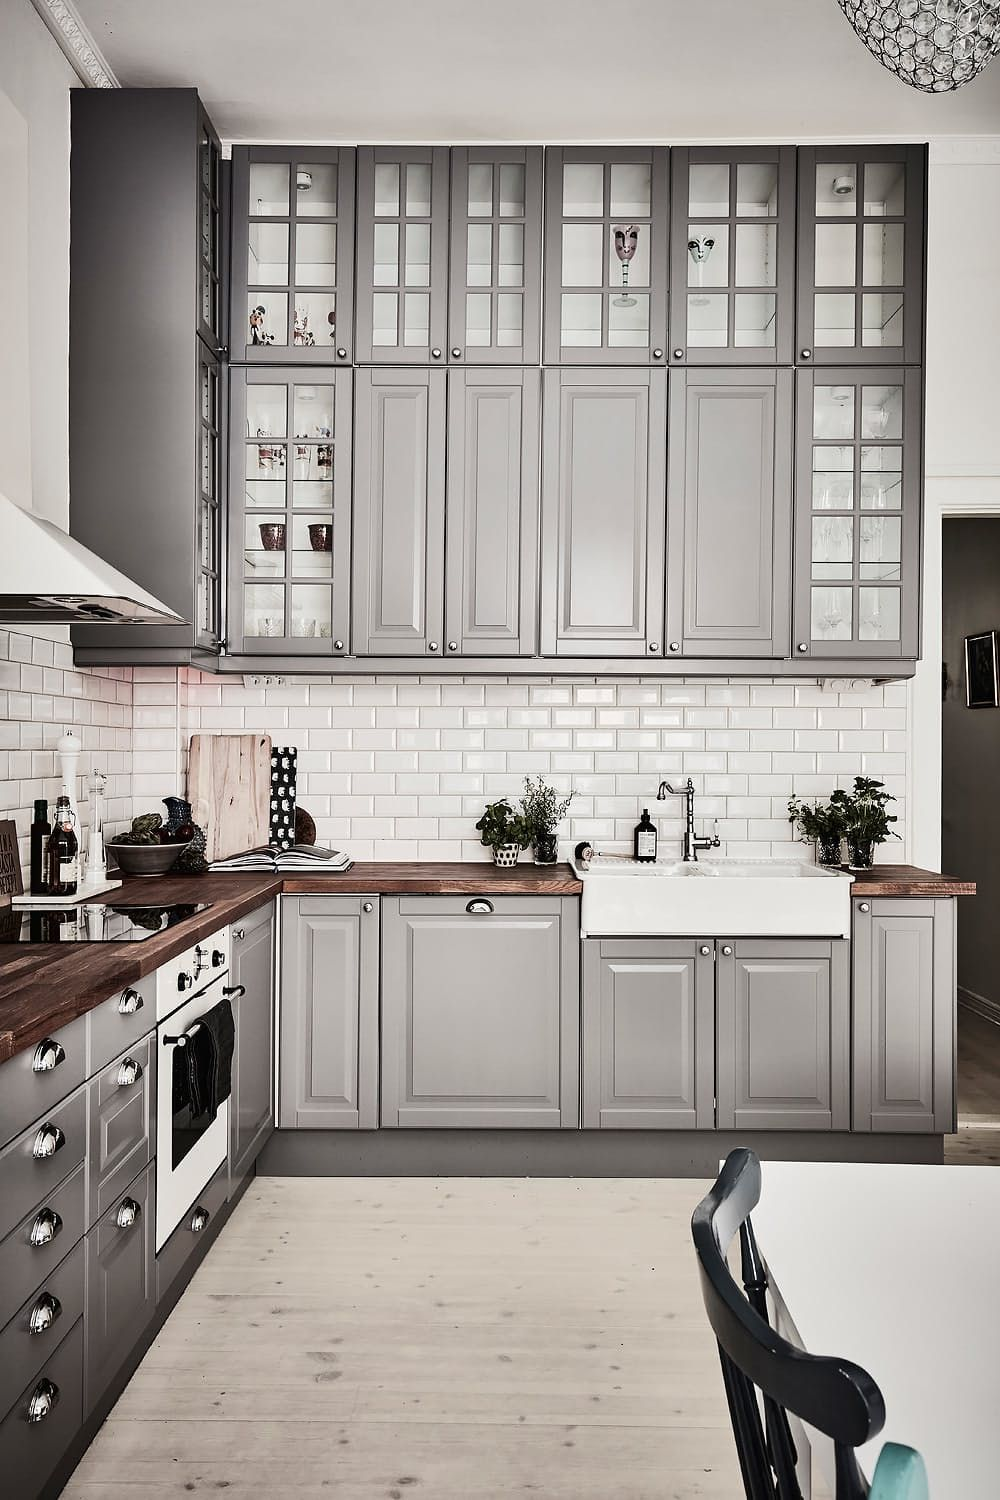 Inspiring Kitchens You Won't Believe are IKEA | iroquois kitchen ...